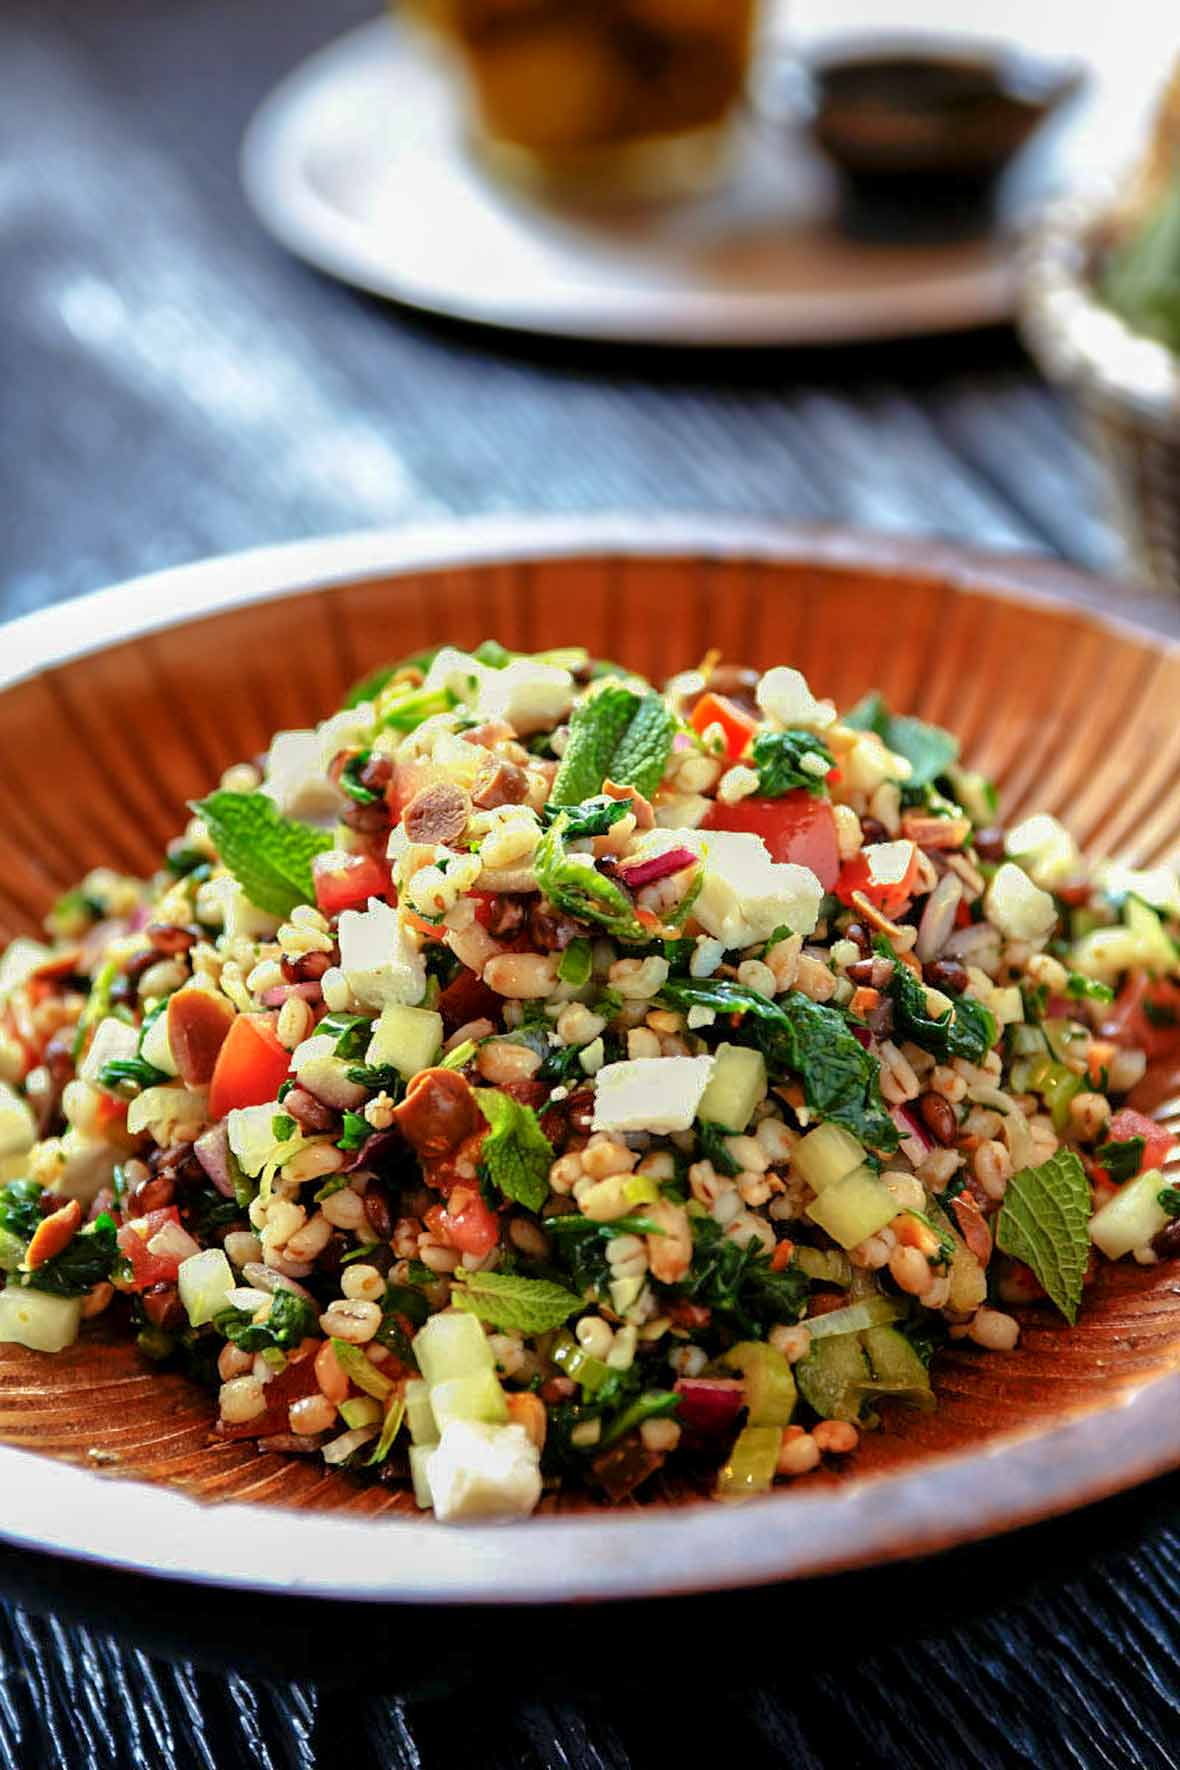 A wooden bowl of barley salad with shopped spinach, tomatoes, feta cheese, onion, and olives